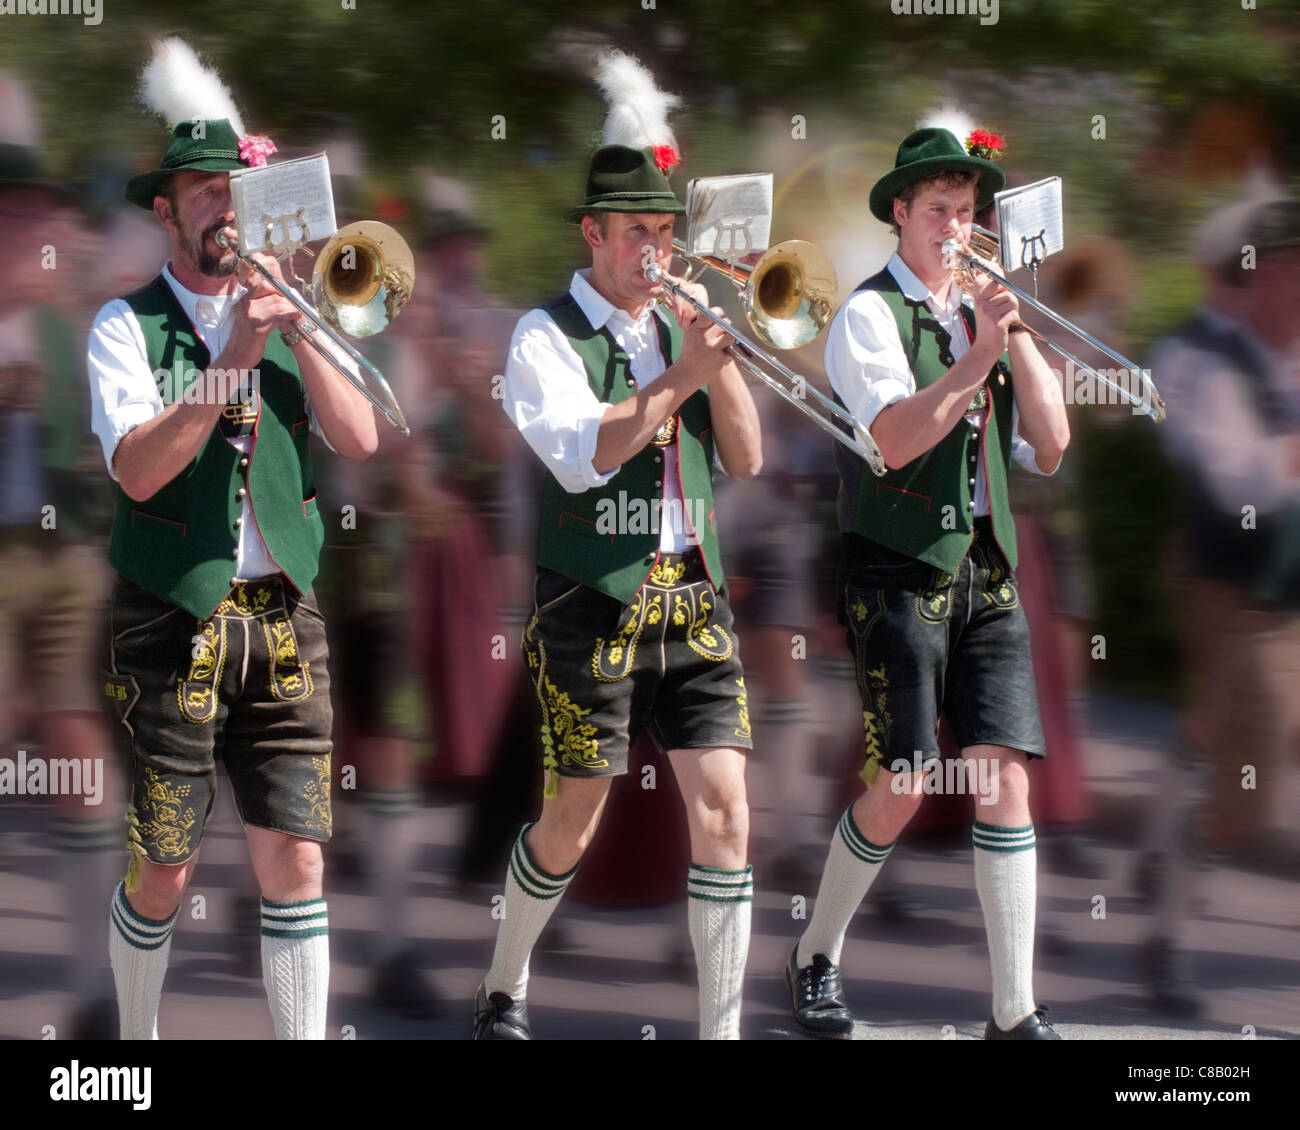 DE - BAVARIA: Traditional Bavarian Musicians - Stock Image